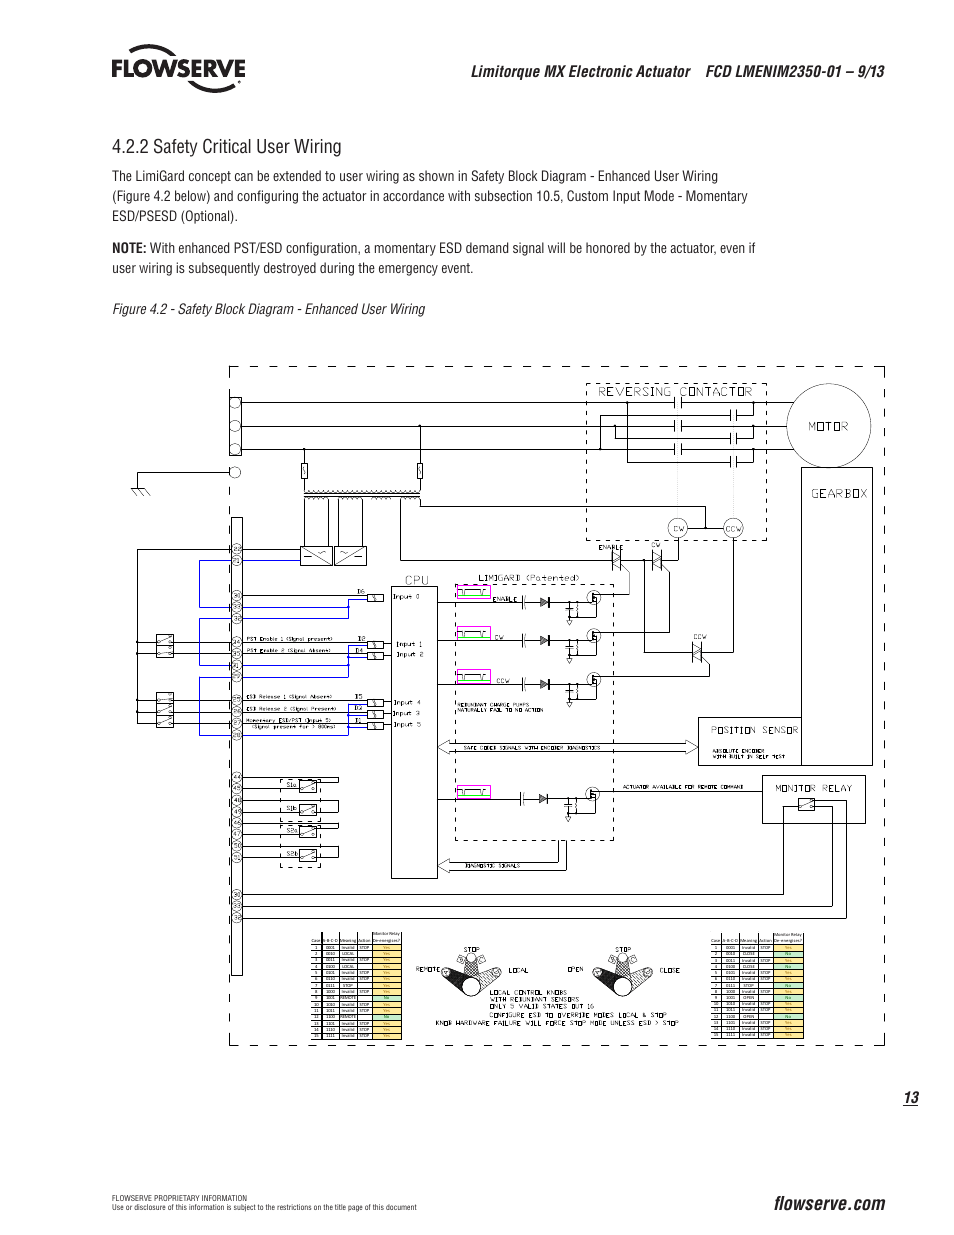 hight resolution of 2 safety critical user wiring flowserve mx electronic actuator sil safety iom user manual page 13 44